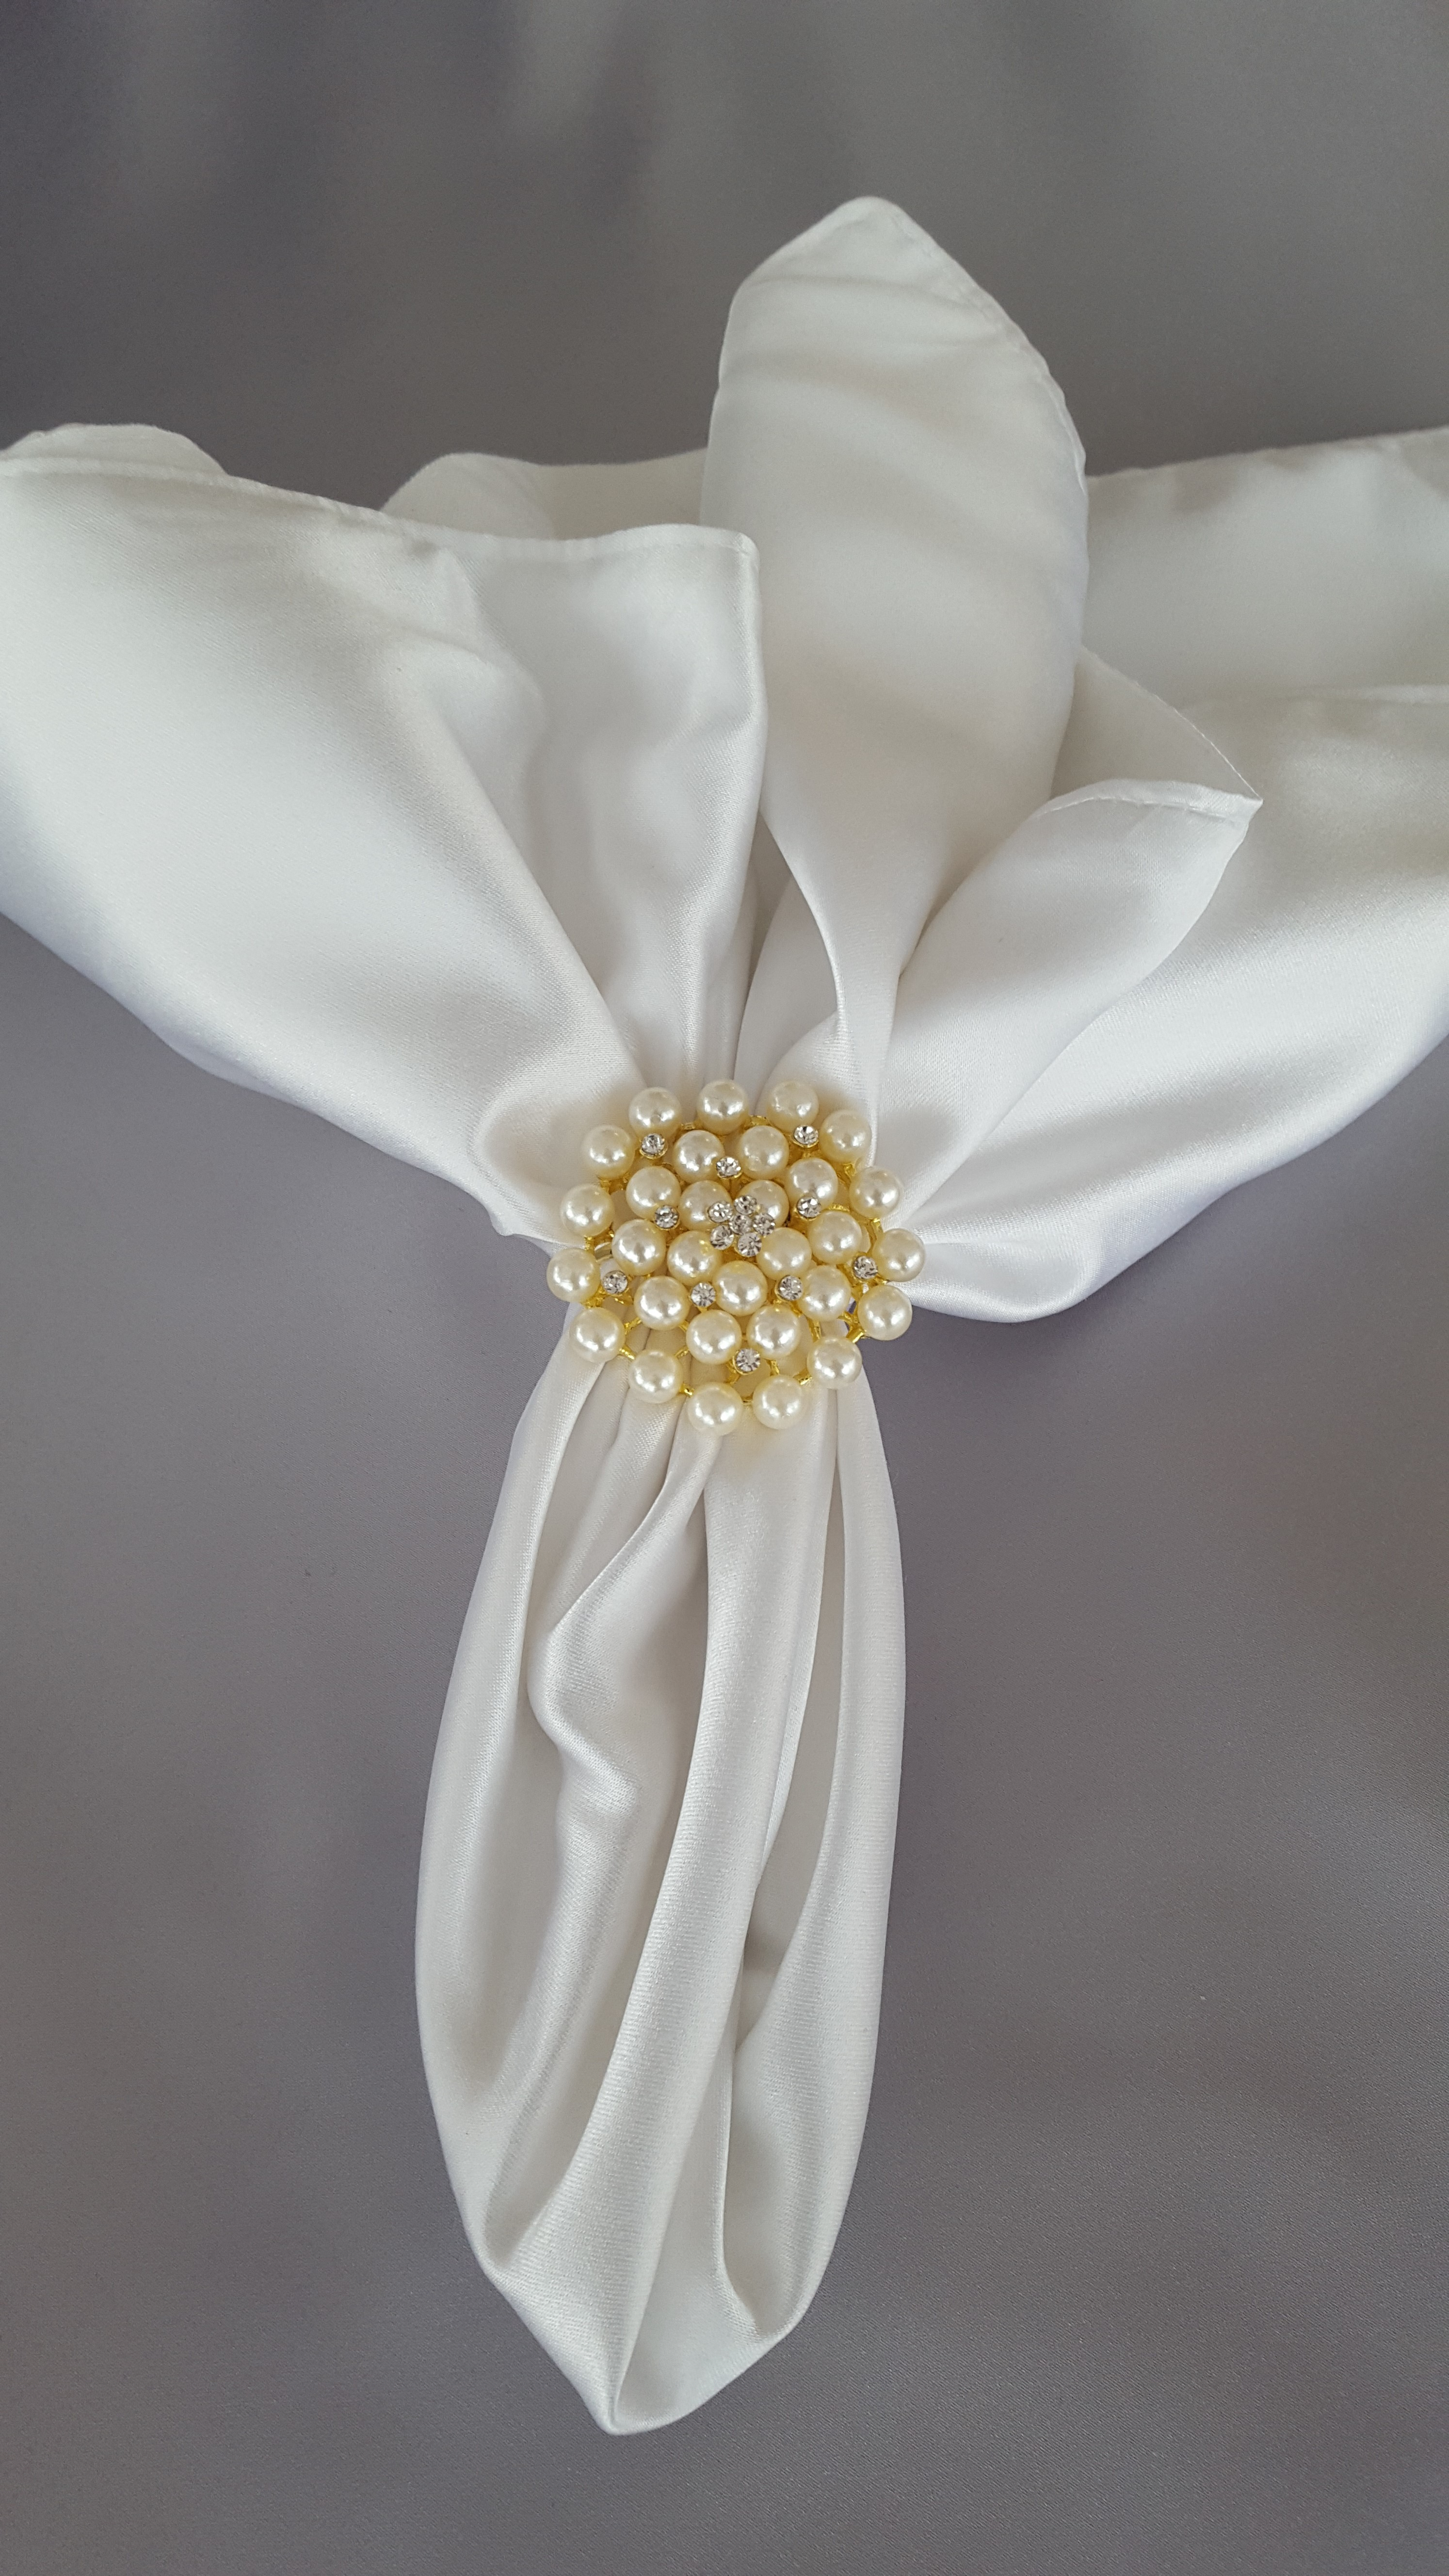 Gold With Pearls Napkin Ring The Finishing Touch